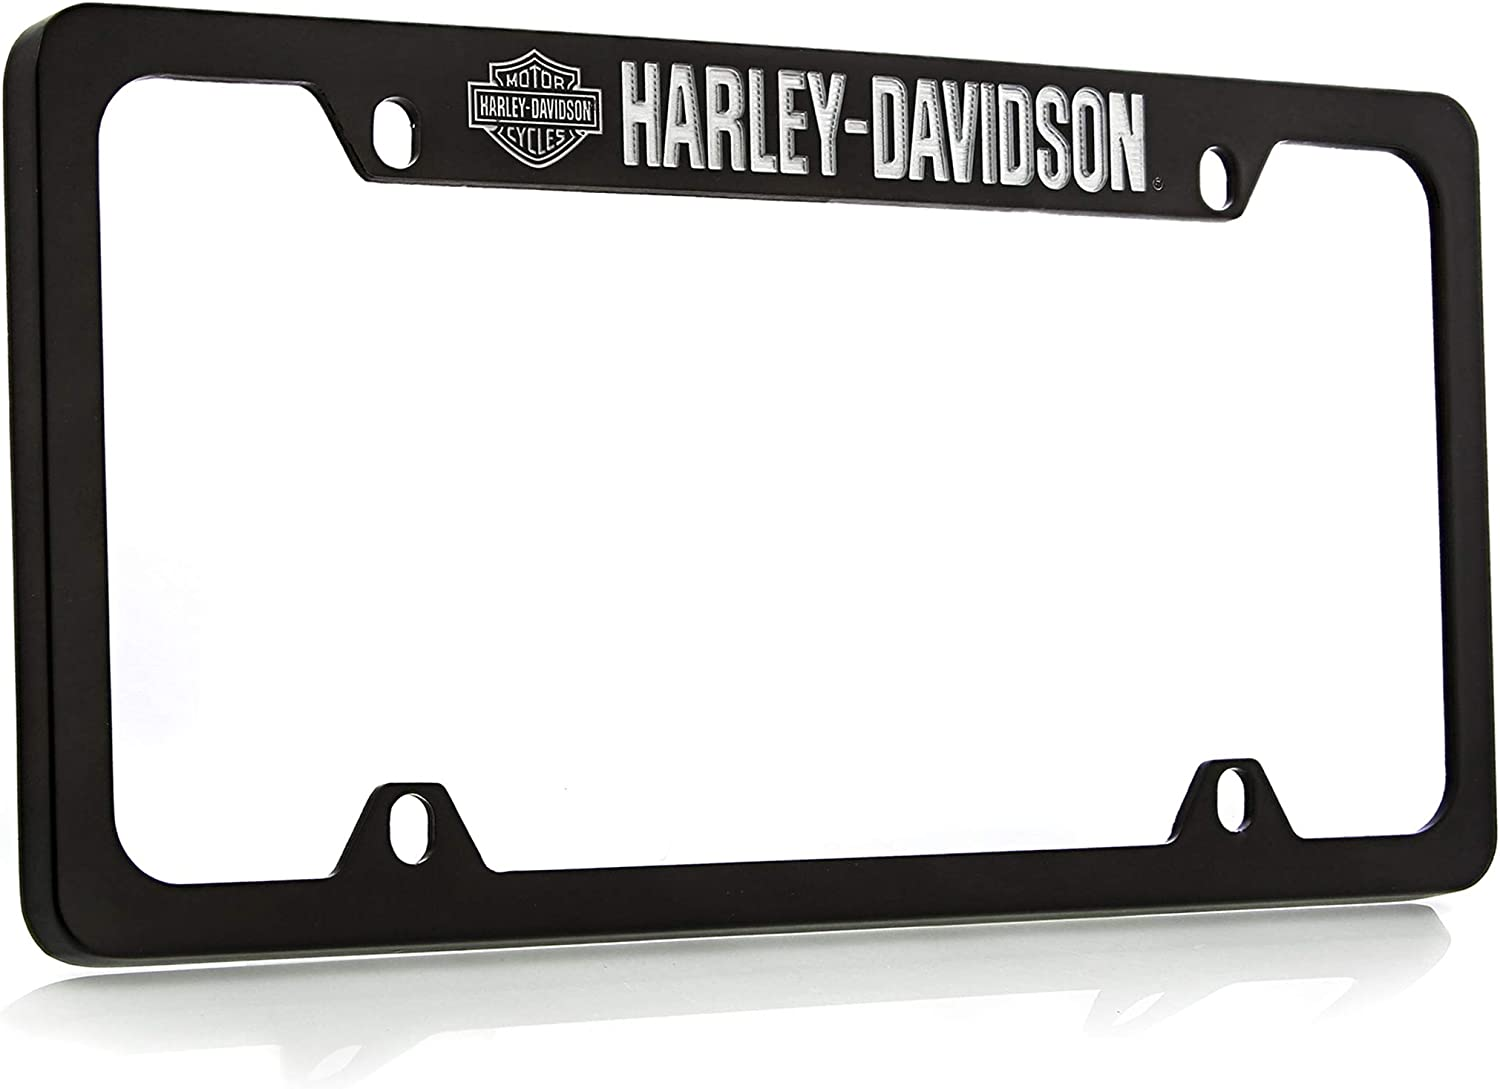 Harley-Davidson Black Powder Coated License Plate with Color Bar /& Shield